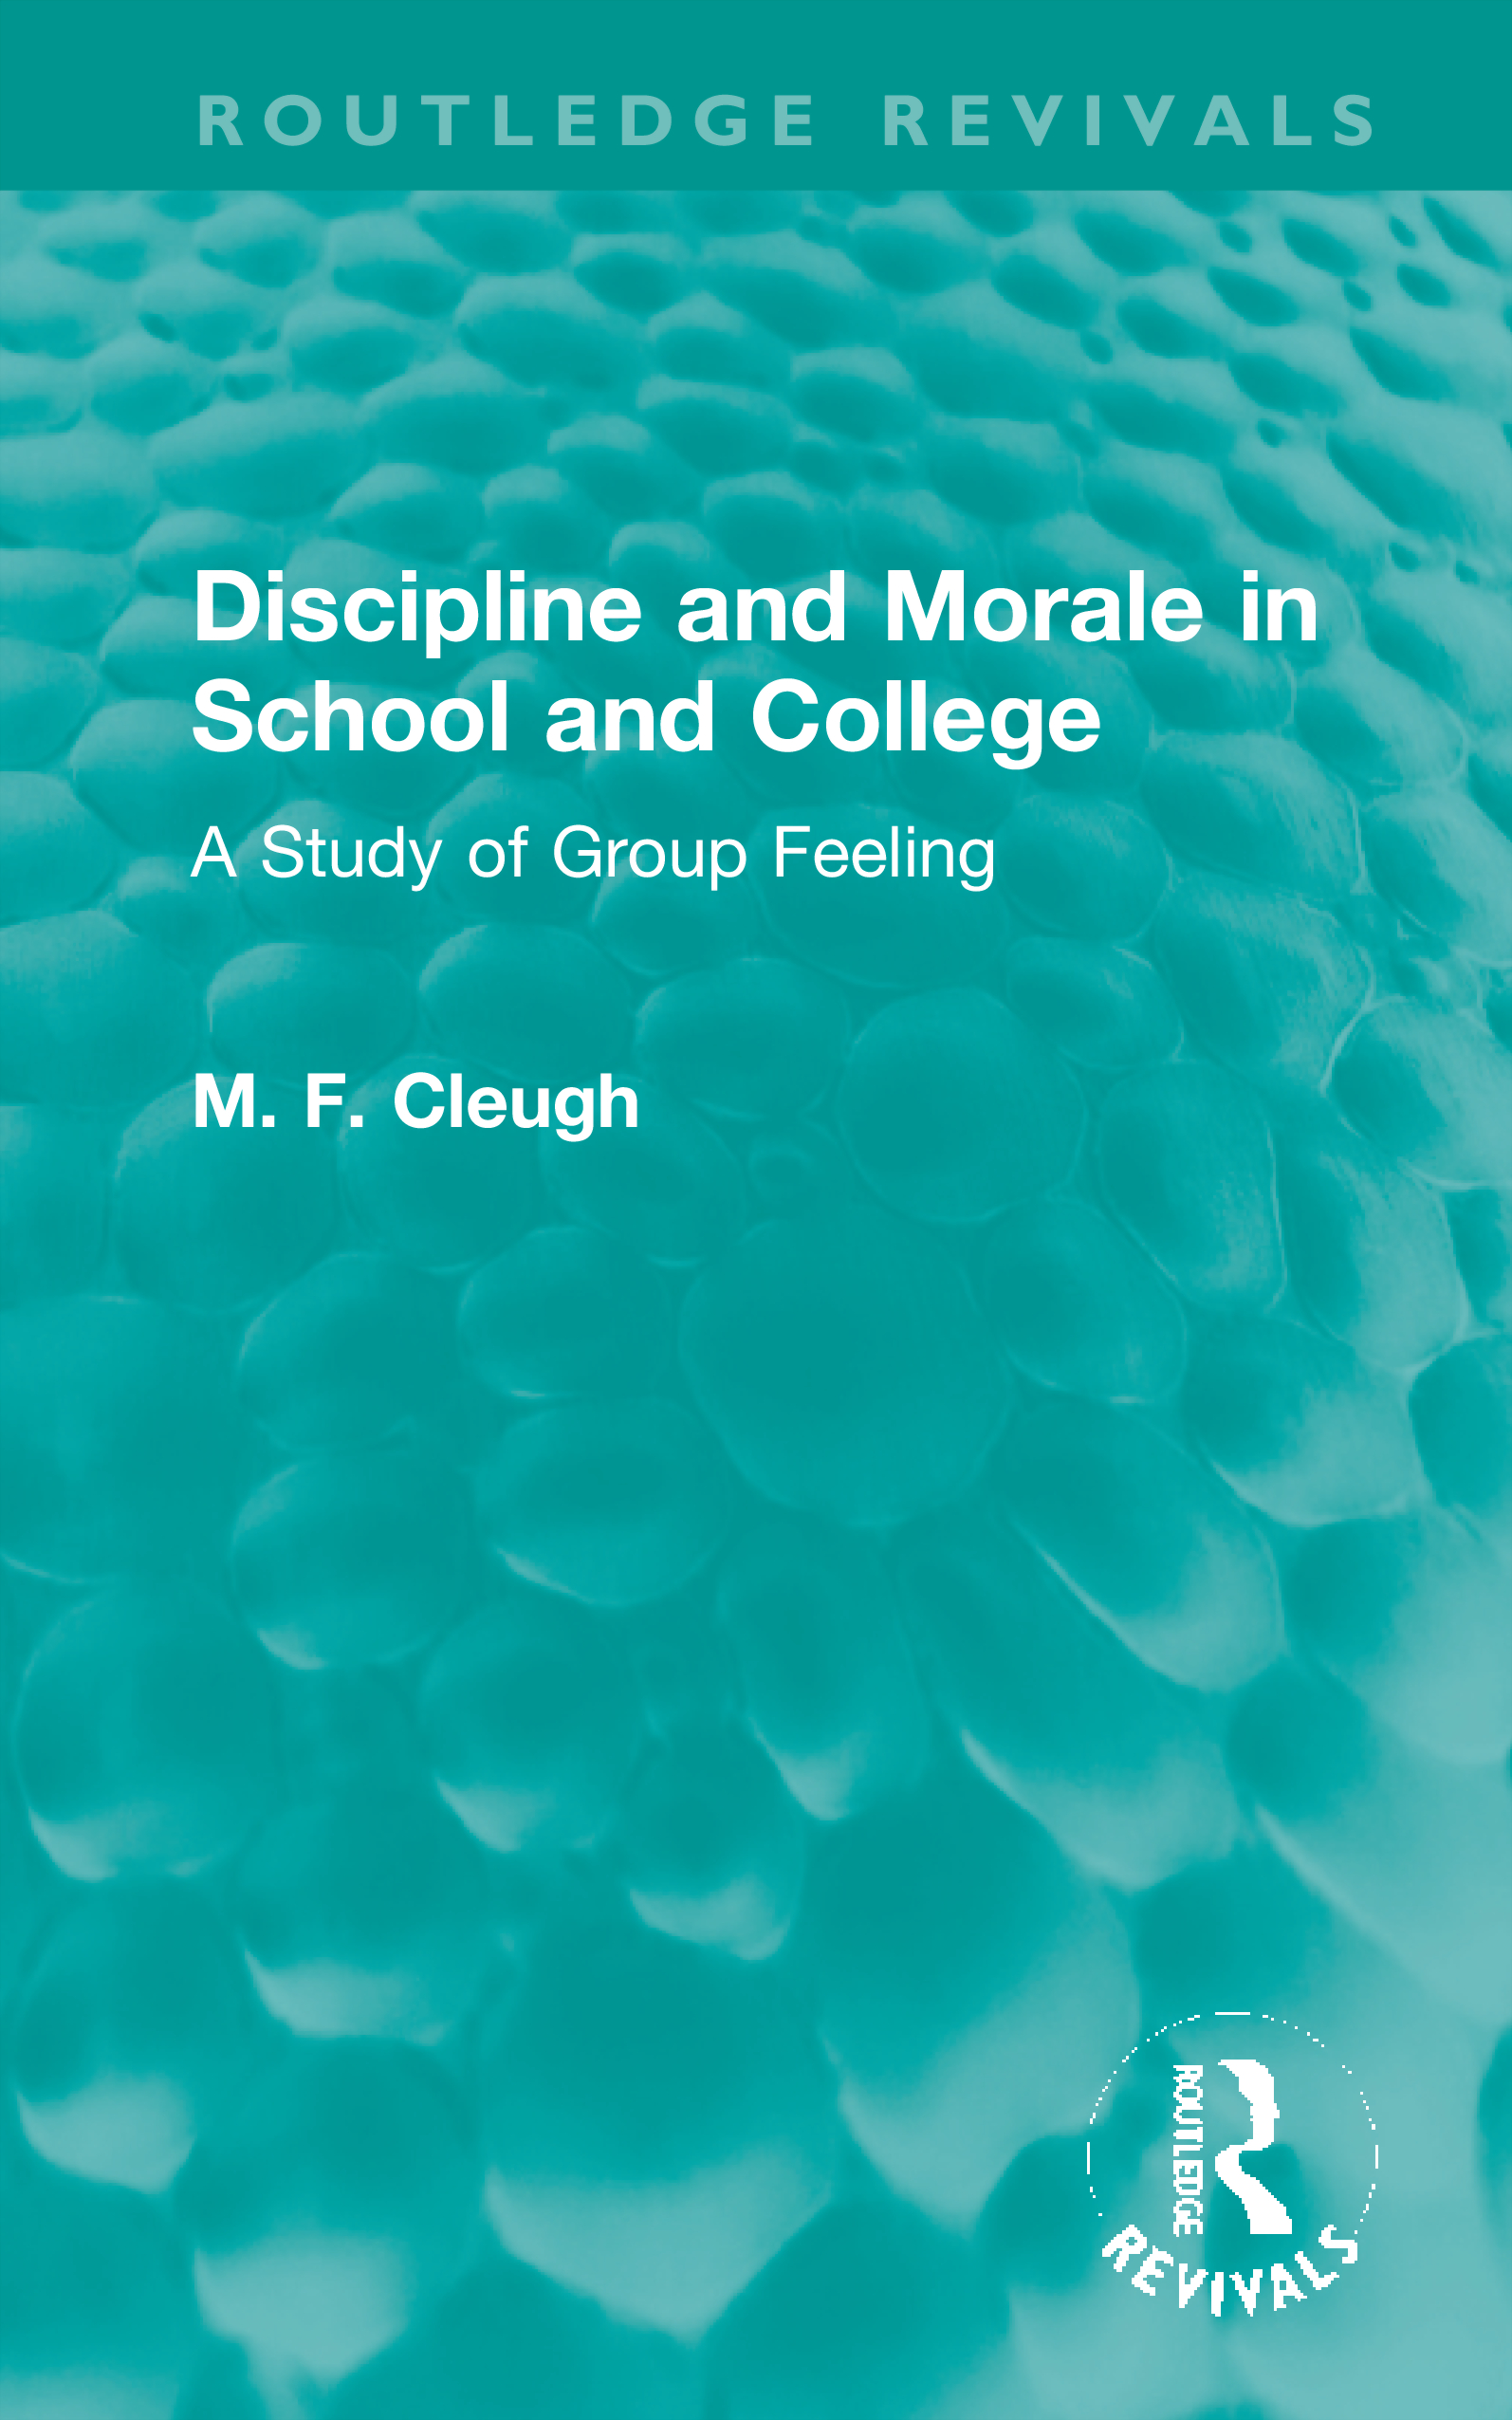 Discipline and Morale in School and College